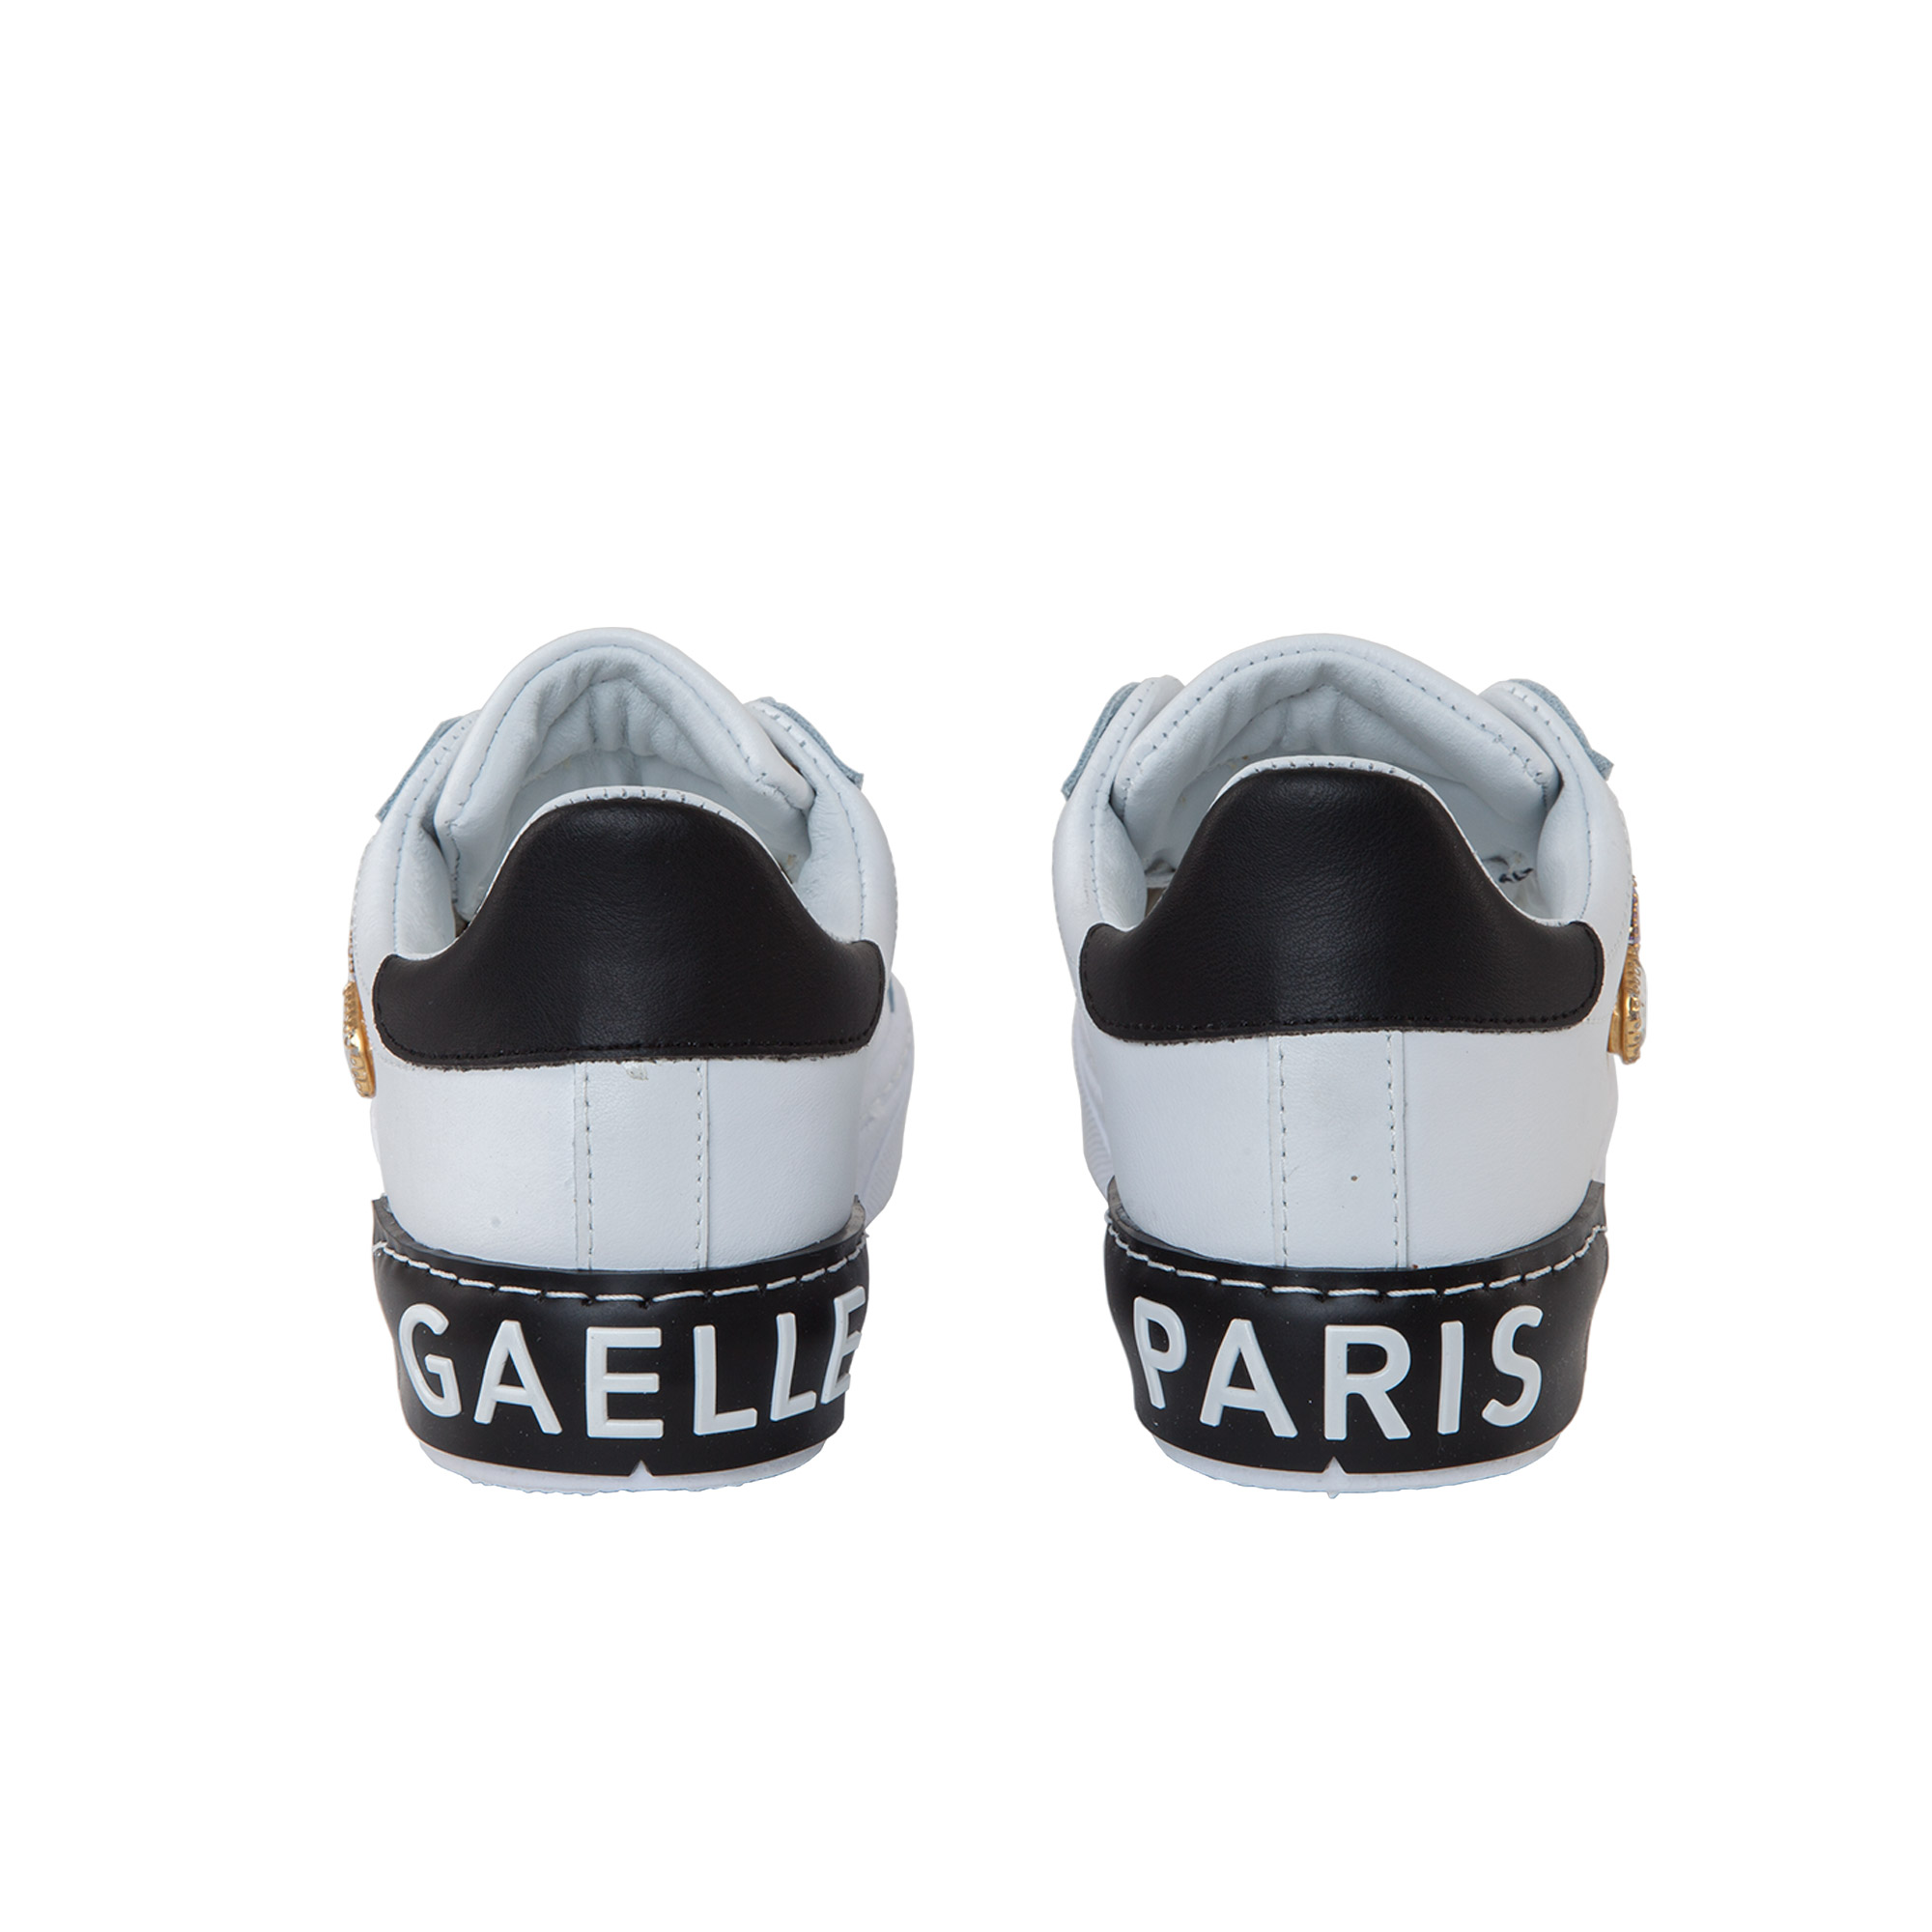 SNEAKERS - GBDA1319 - GAELLE PARIS